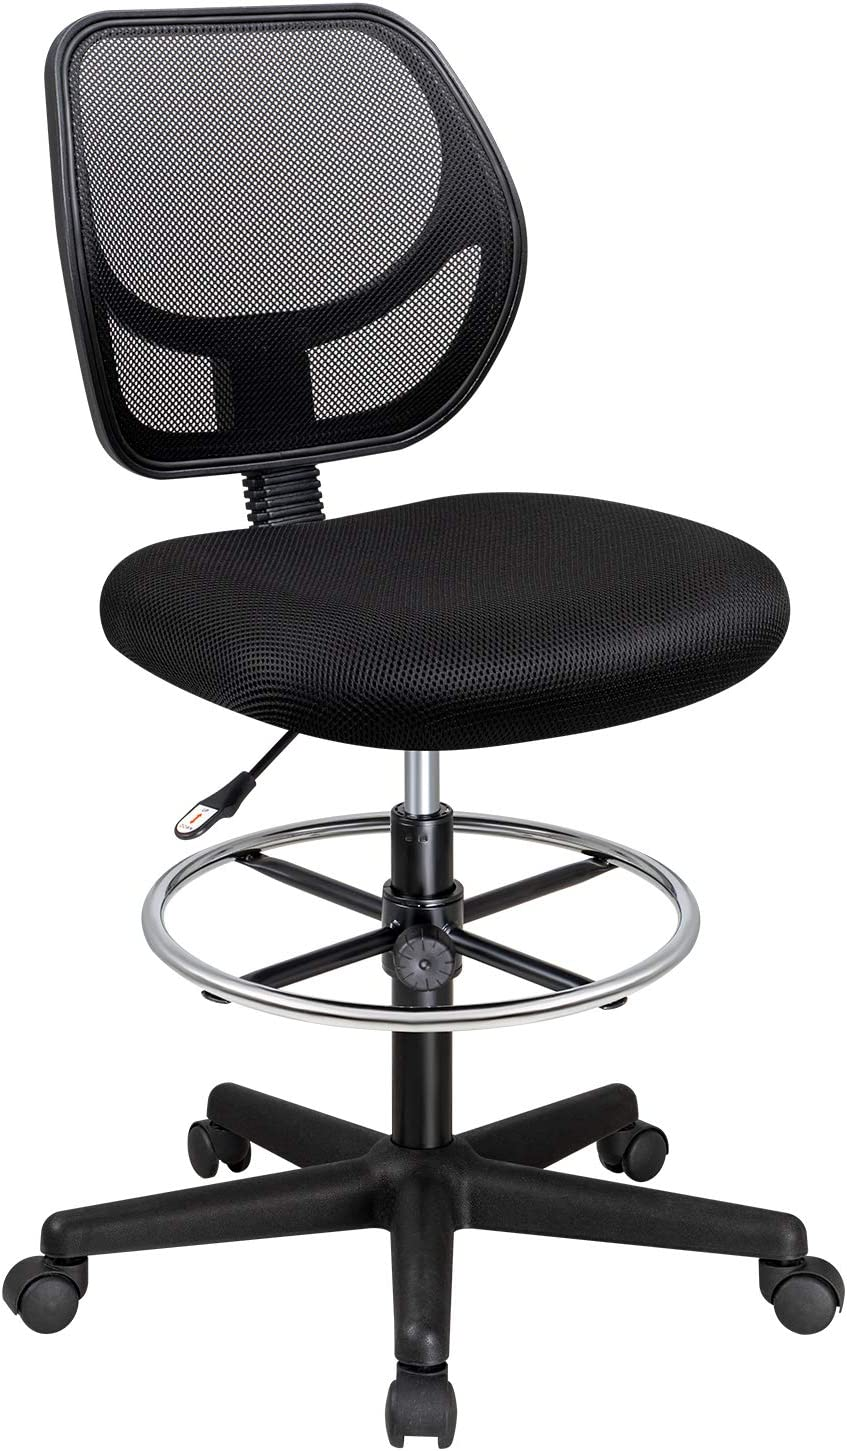 Furmax Mesh Office Drafting Chair discount Foot Tall Adjustable with Very popular Ring